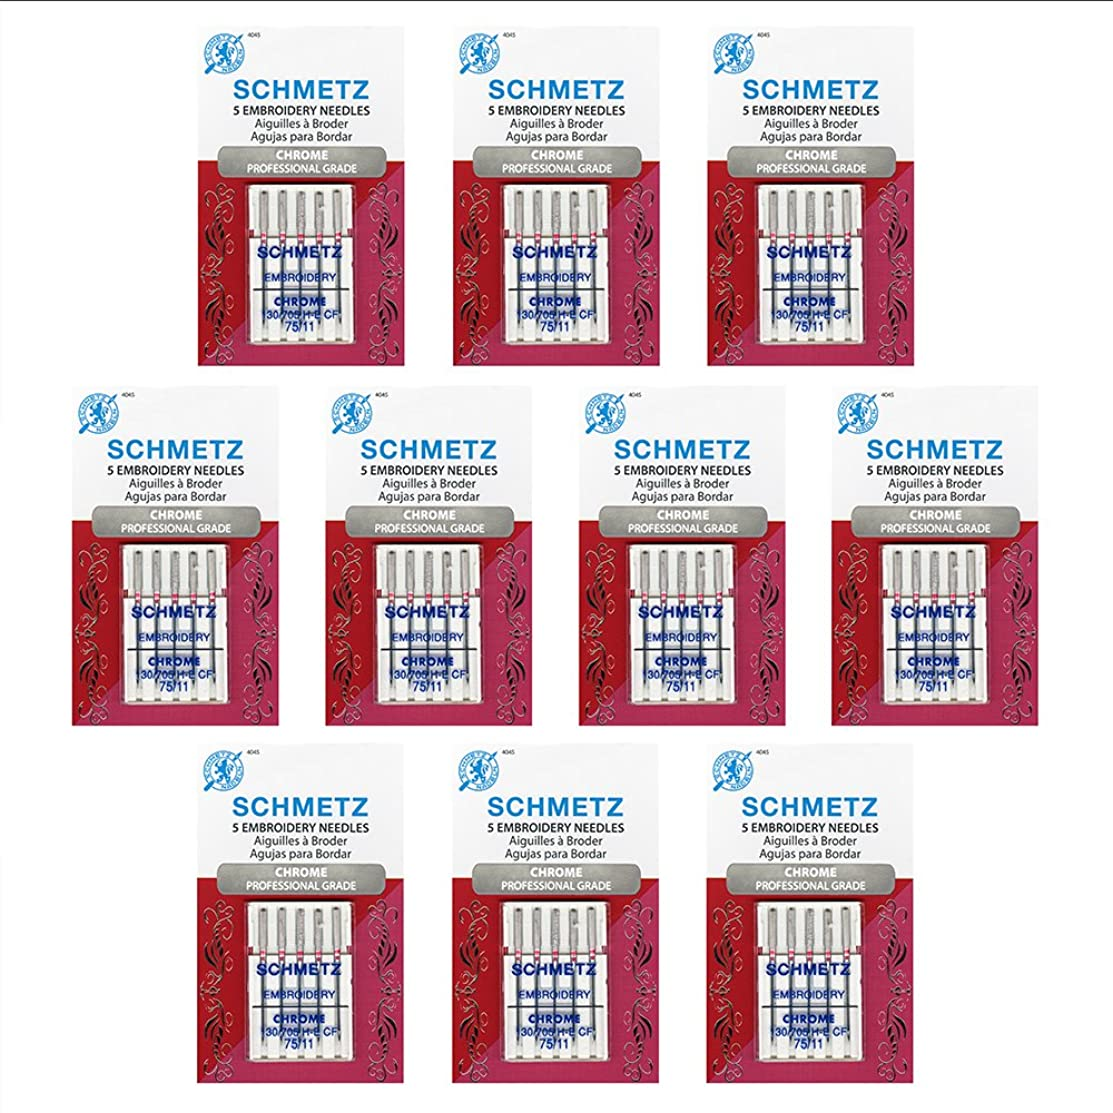 50 Schmetz Chrome?Embroidery Sewing Machine Needles - size 75/11 - Box of 10 cards